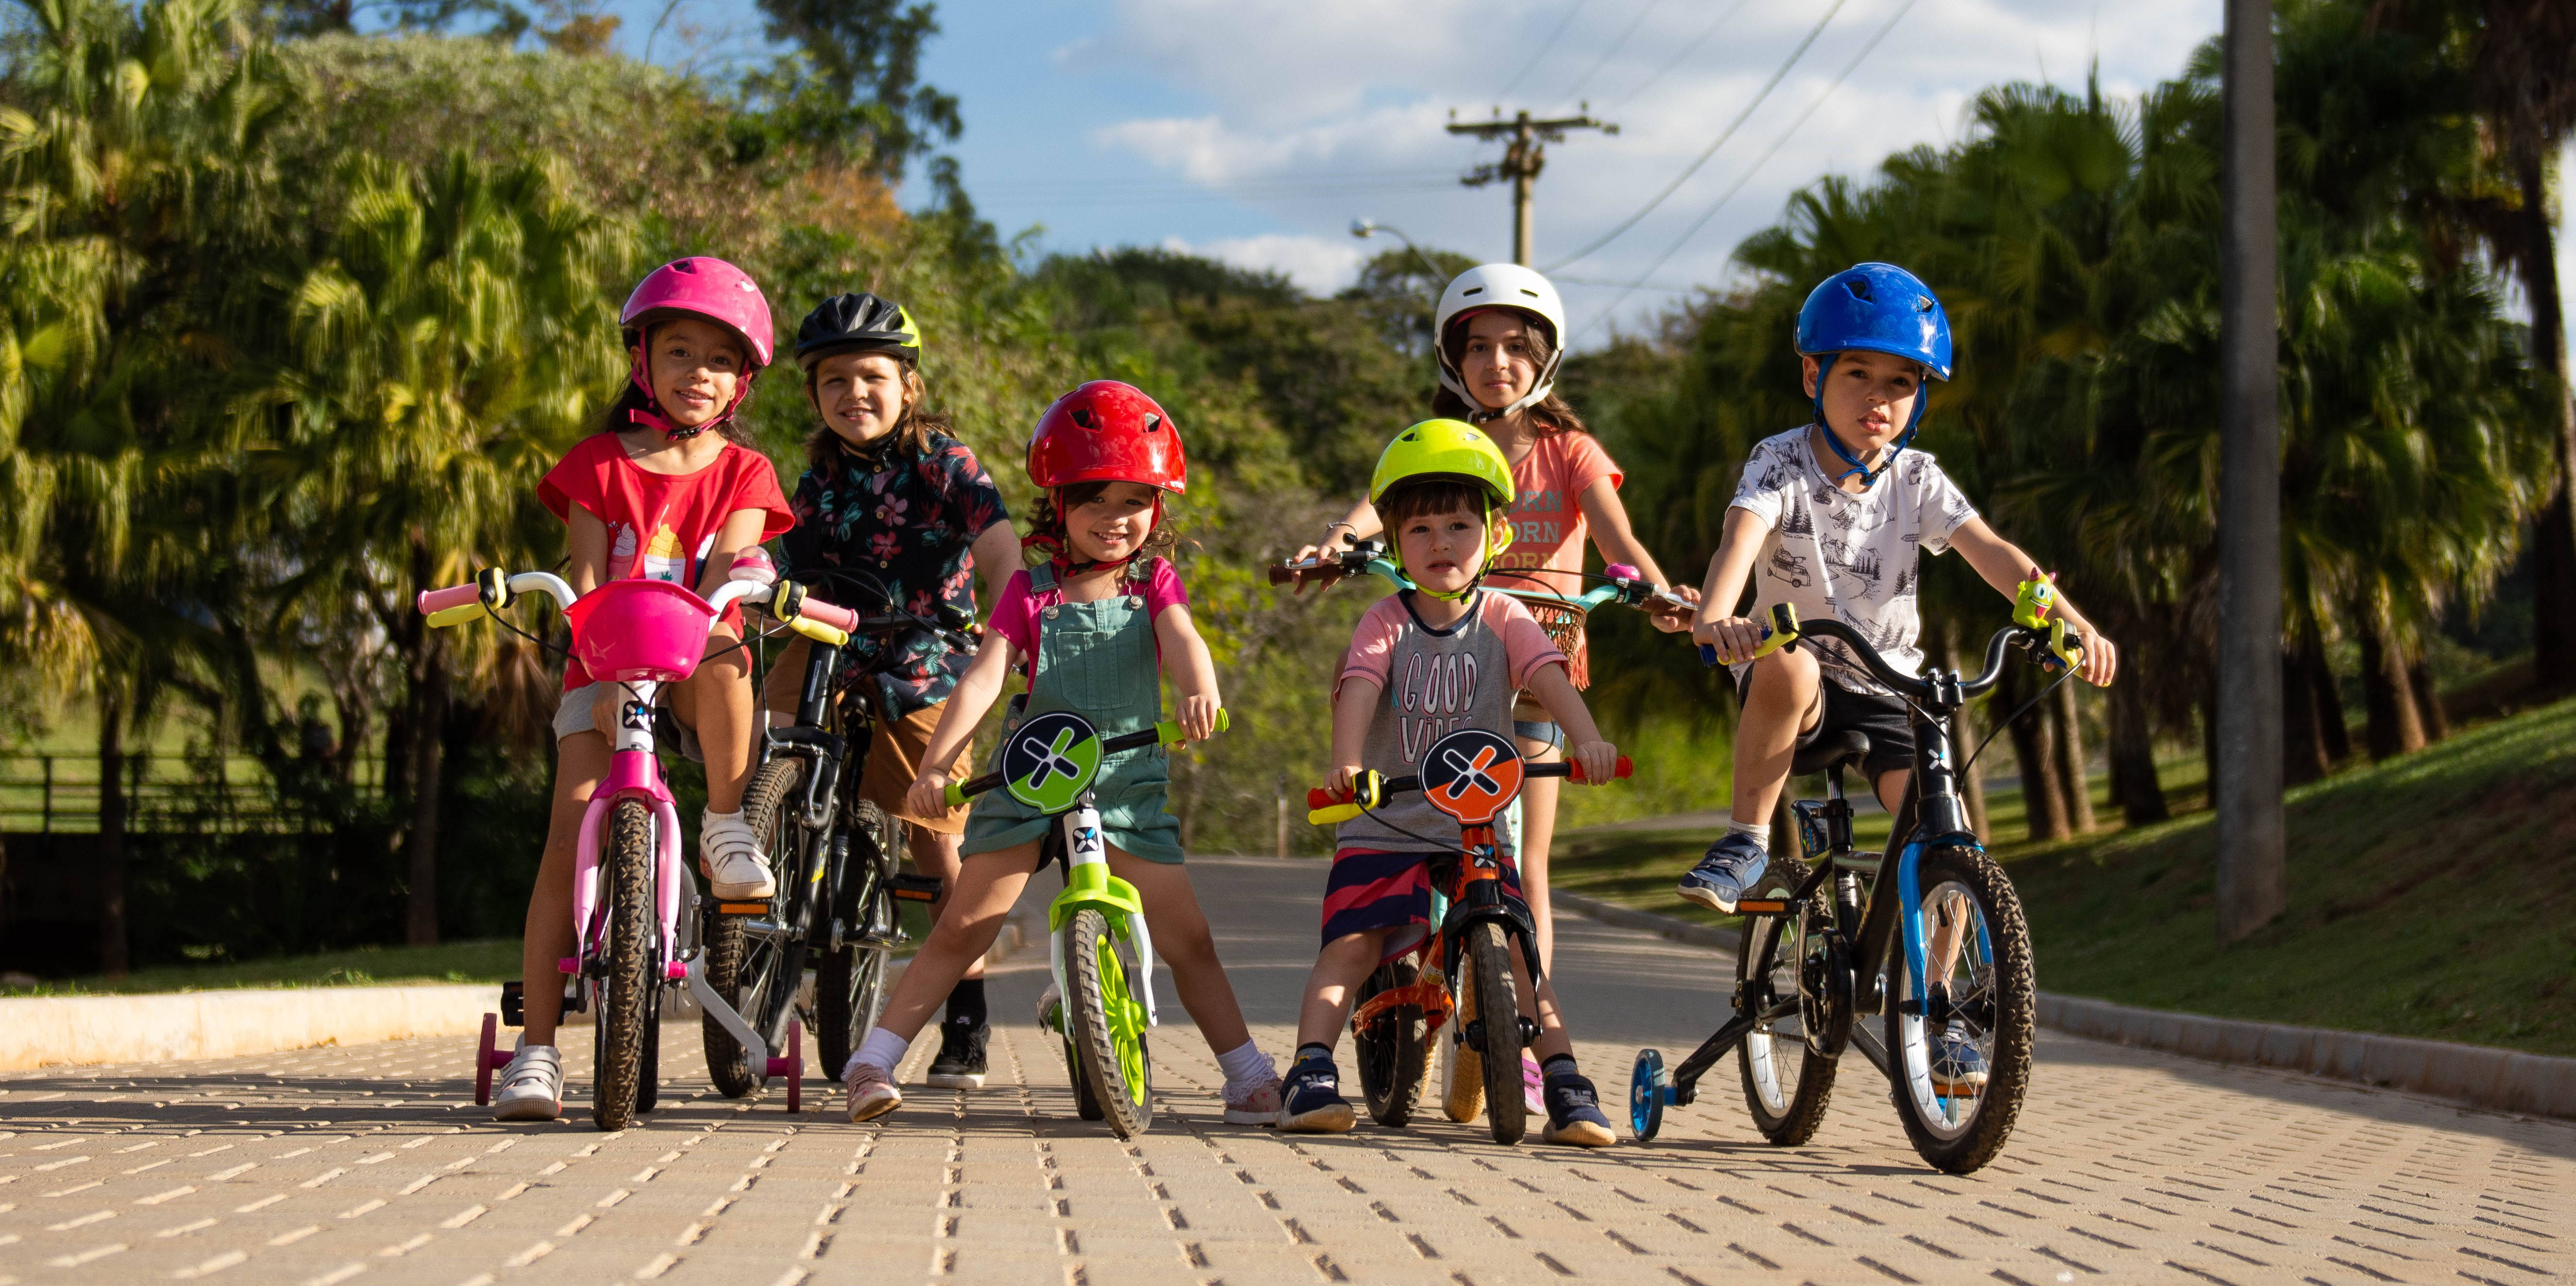 How Can I Keep My Kids Safe While Cycling?